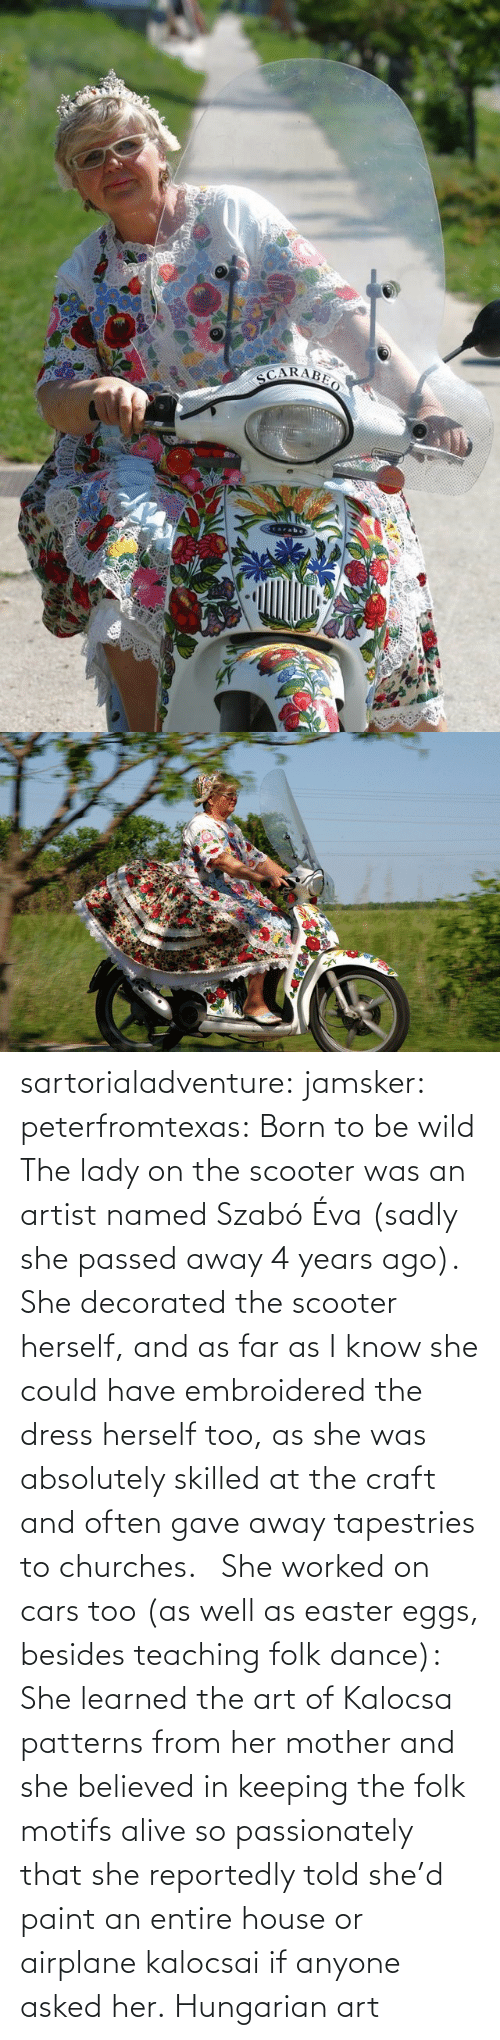 Paint: sartorialadventure: jamsker:  peterfromtexas: Born to be wild The lady on the scooter was an artist named Szabó Éva (sadly she passed away 4 years ago). She decorated the scooter herself, and as far as I know she could have embroidered the dress herself too, as she was absolutely skilled at the craft and often gave away tapestries to churches.   She worked on cars too (as well as easter eggs, besides teaching folk dance): She learned the art of Kalocsa patterns from her mother and she believed in keeping the folk motifs alive so passionately that she reportedly told she'd paint an entire house or airplane kalocsai if anyone asked her.  Hungarian art